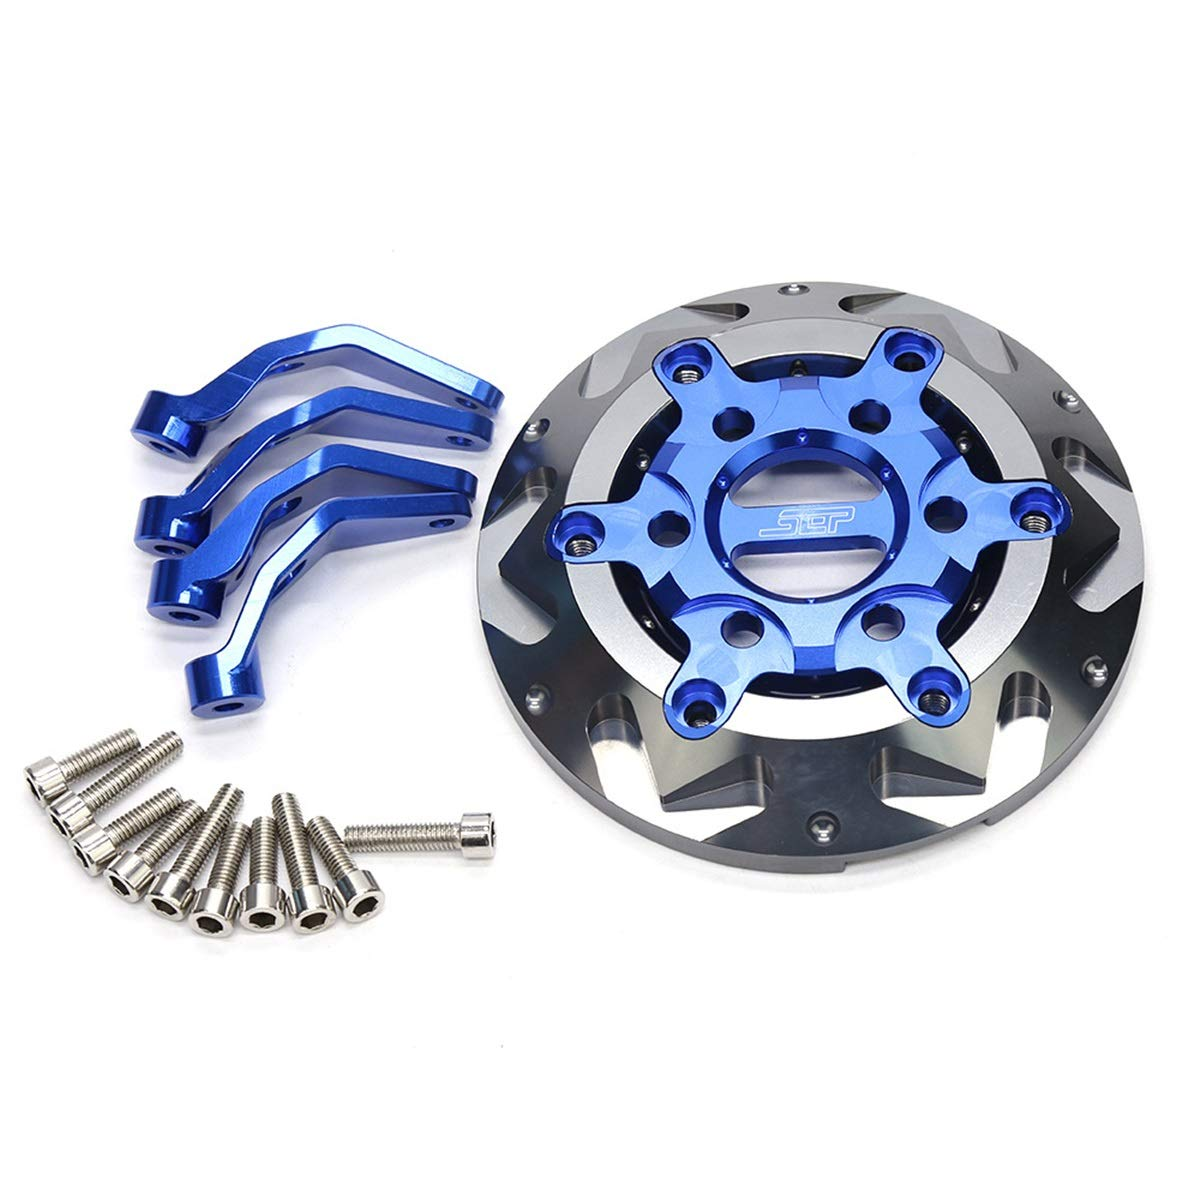 CONGCASE Motorcycle Compatible with Yamaha Smax155 Modified Aluminum Alloy Fan Blade Engine Cover (Color : Blue Titanium) by CONGCASE